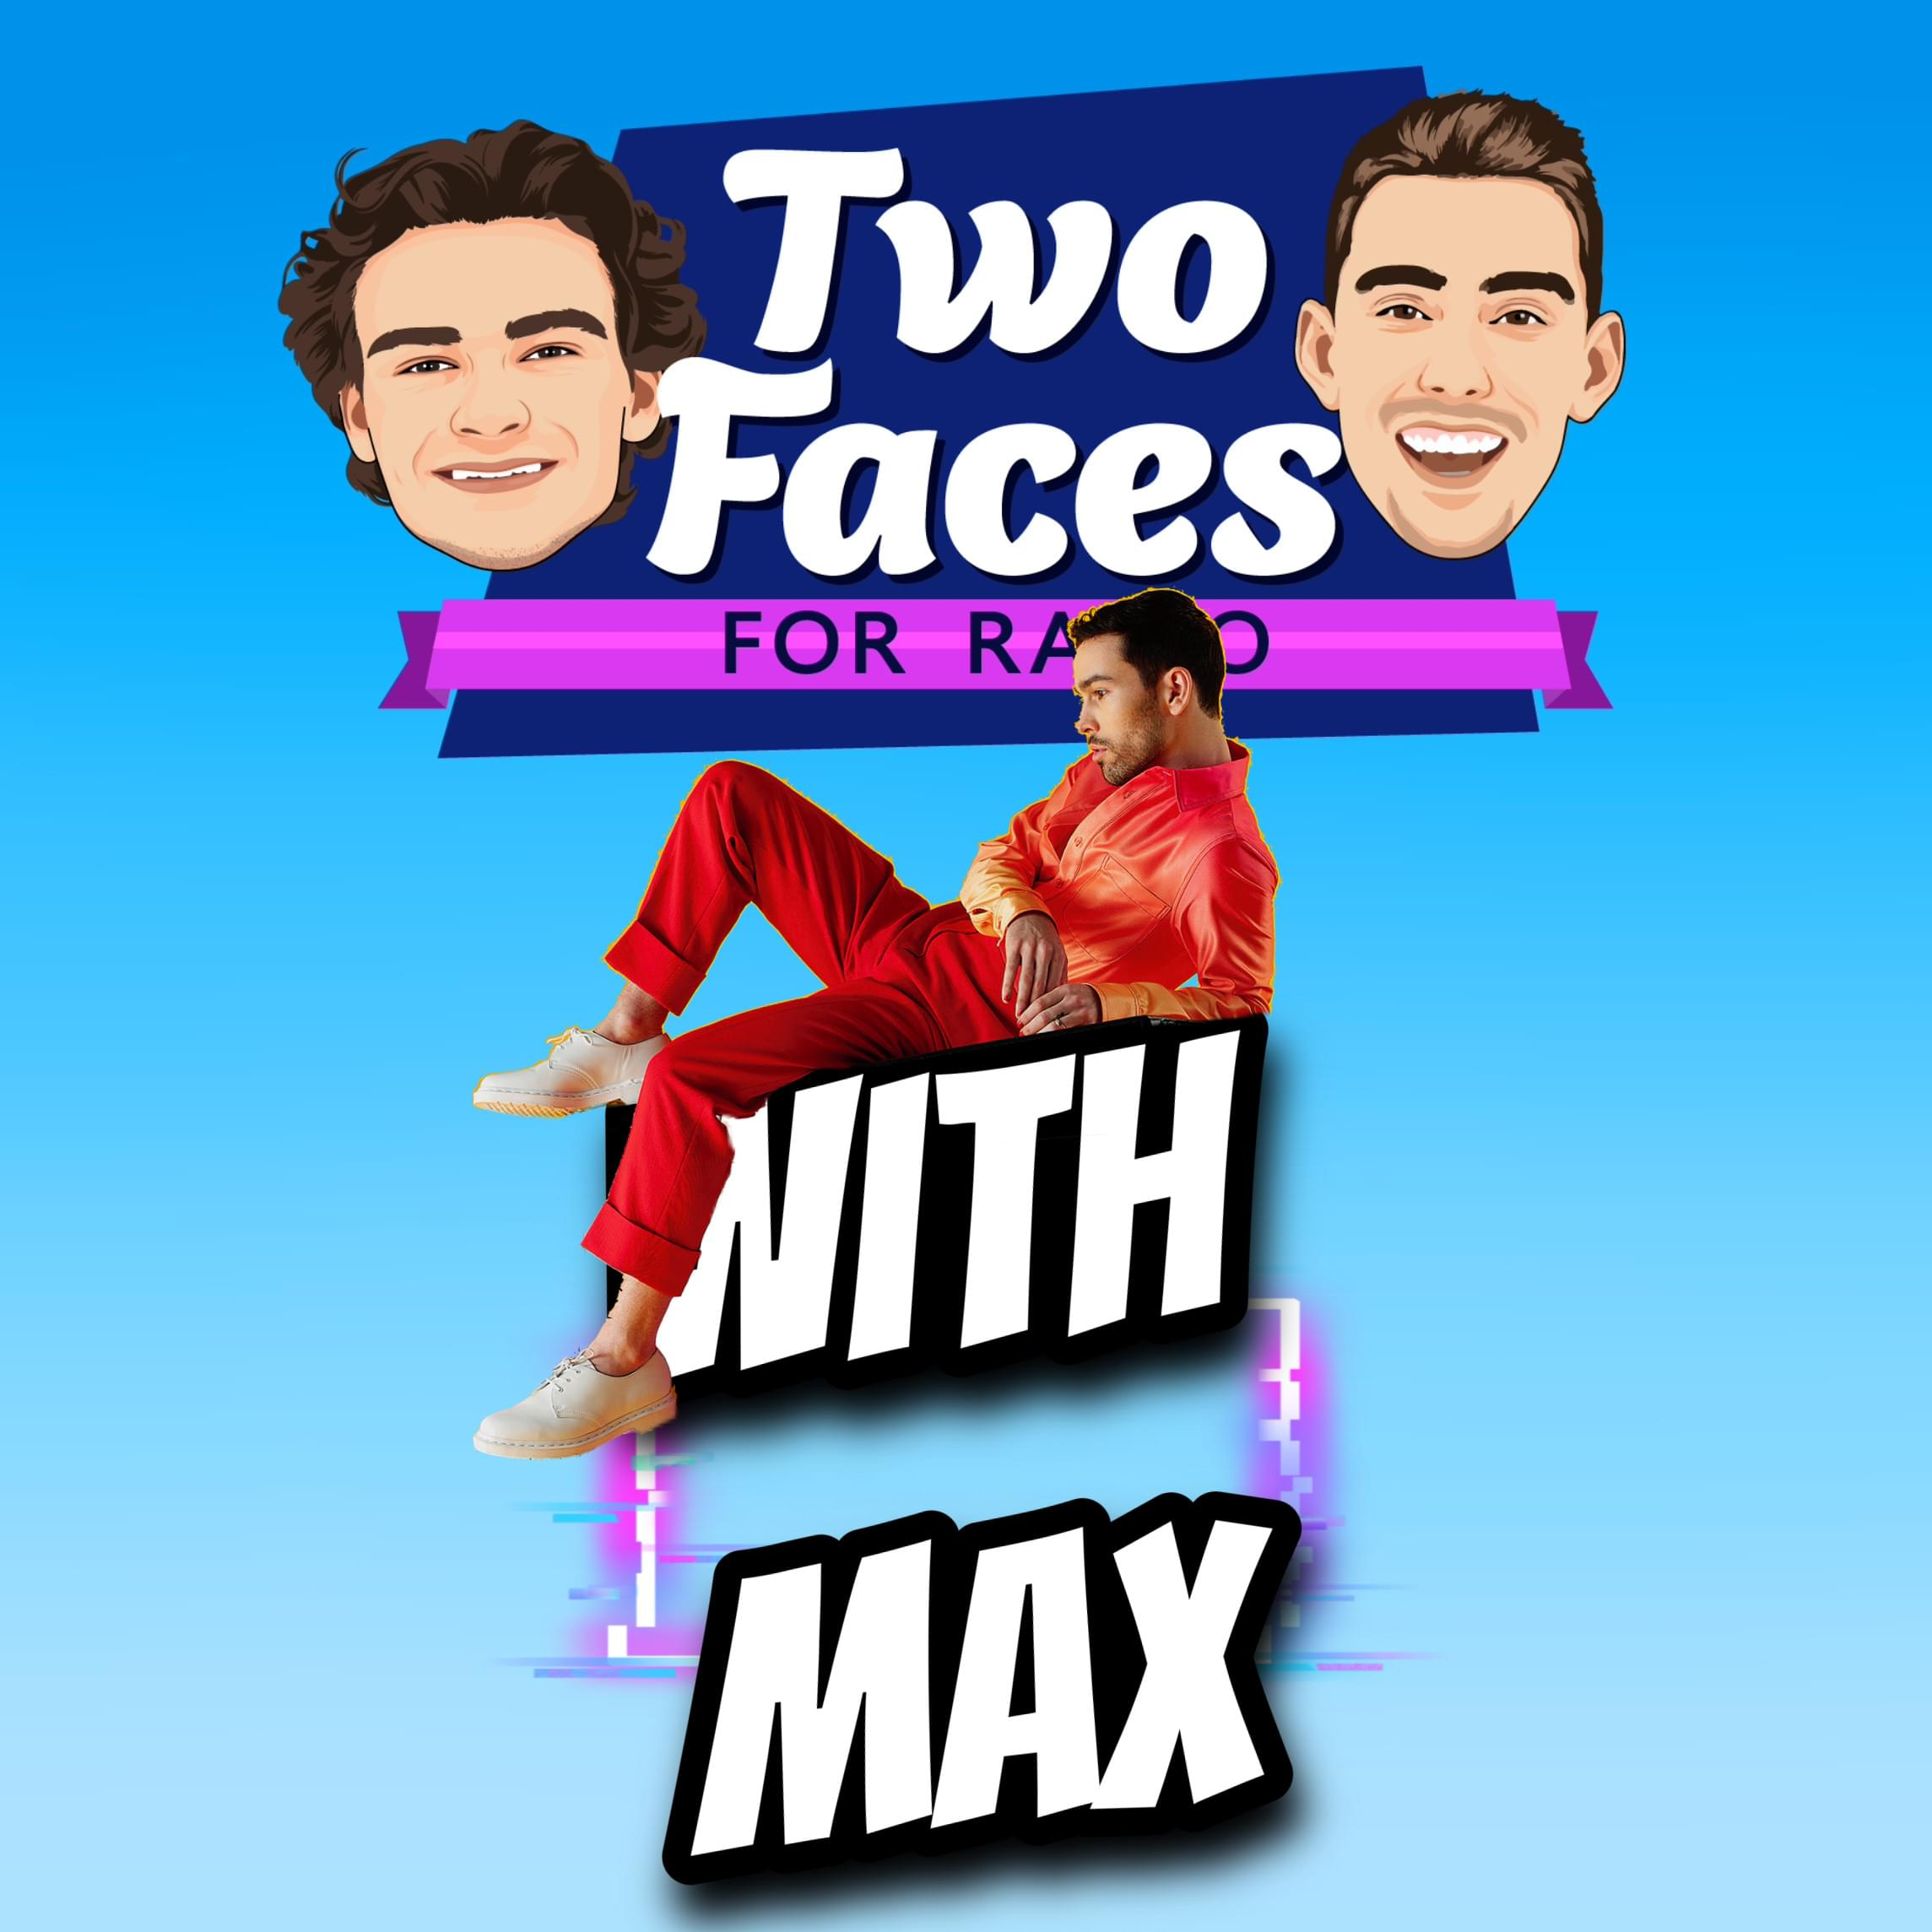 MAX is Officially the 12th Guest Featured on the 'Two Faces For Radio' Podcast